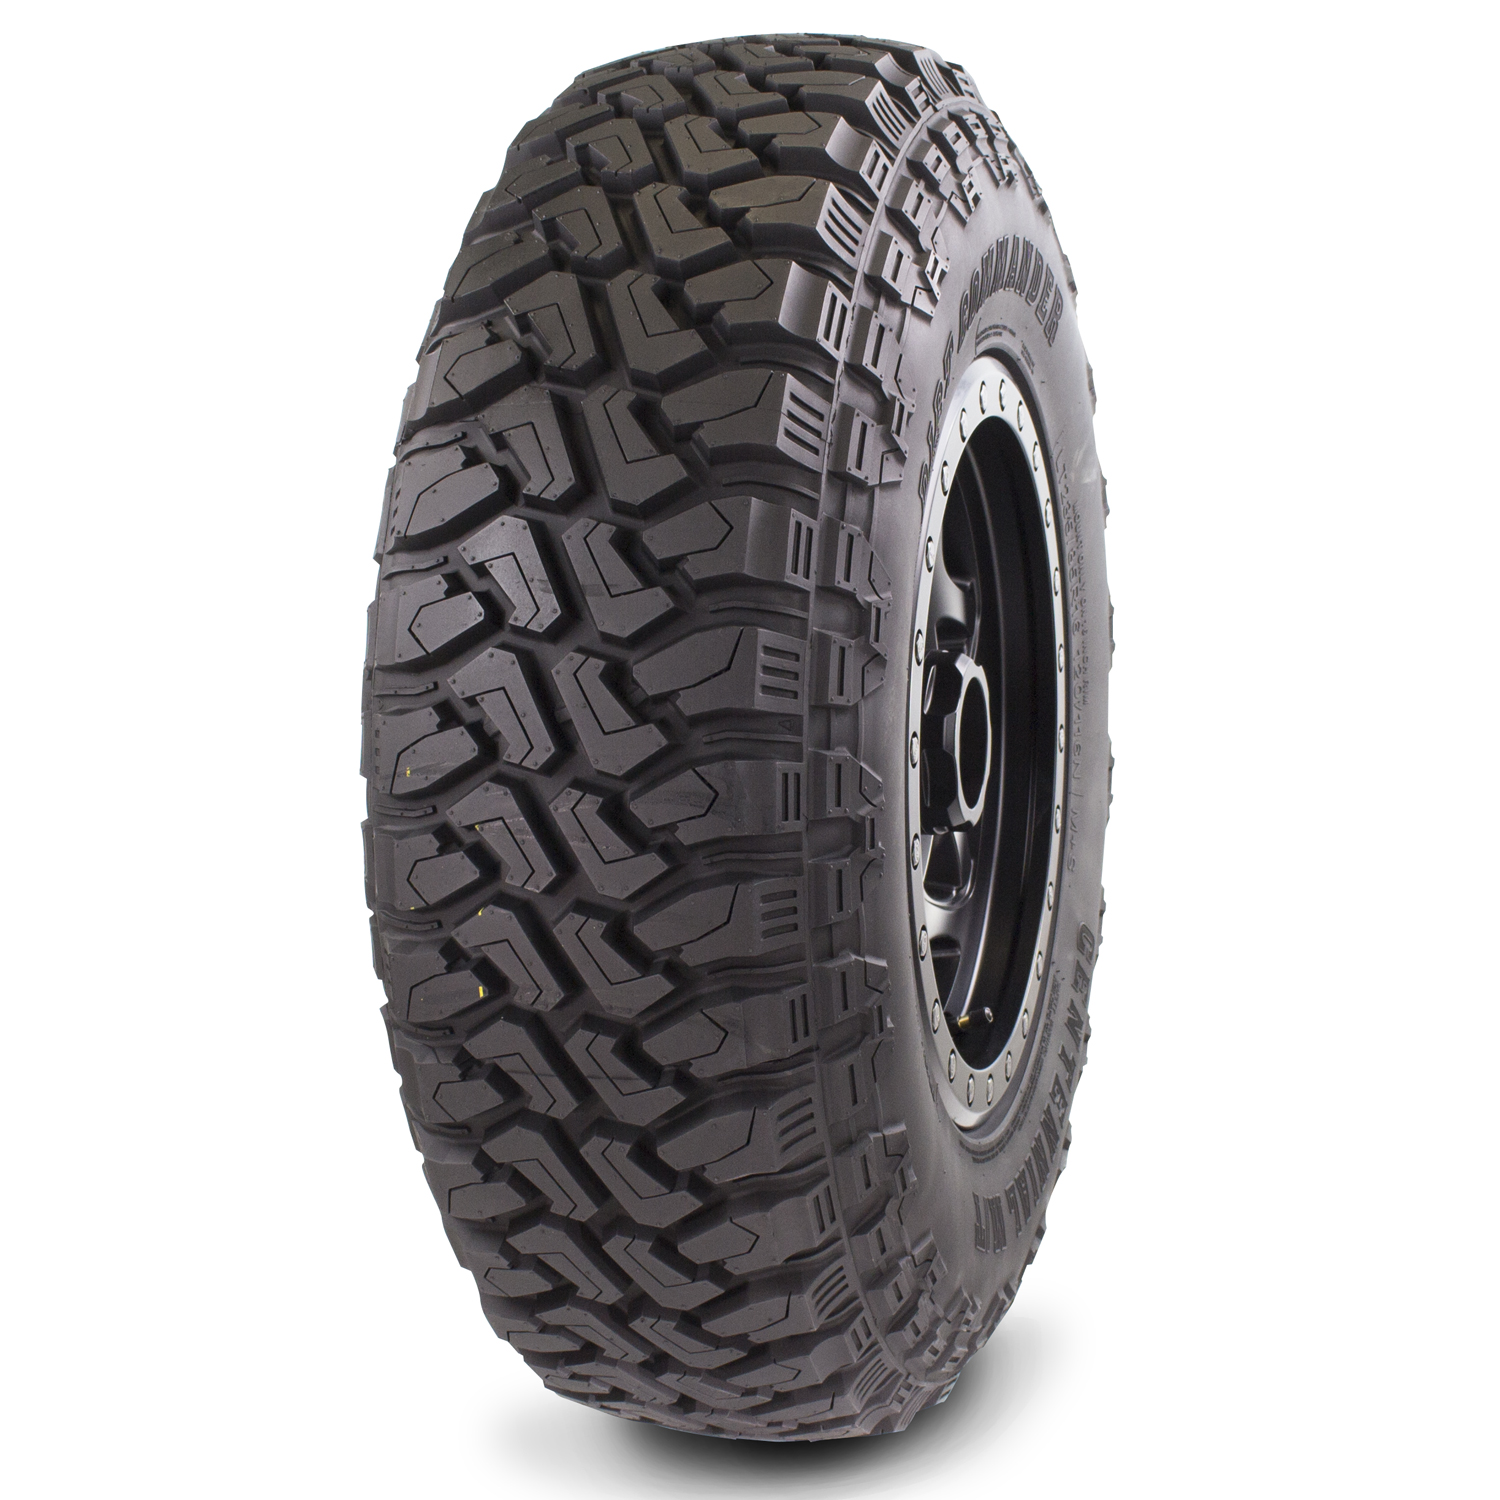 SIZE: 35125018,   PLY: 12 - F,   UTQG: ,   MILEAGE: ,   SIDEWALL: BSW,   SPEED: